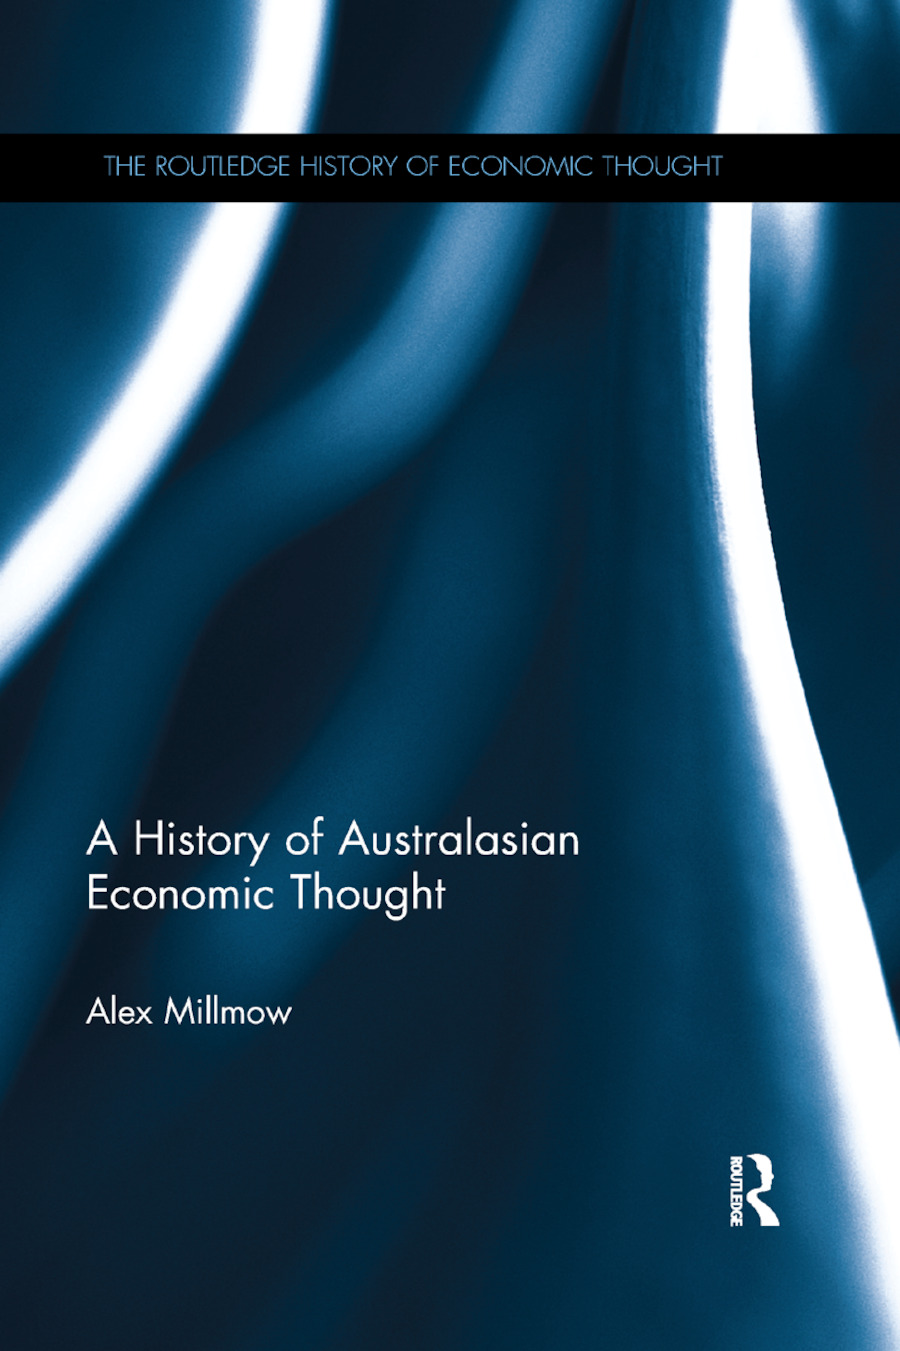 A History of Australasian Economic Thought